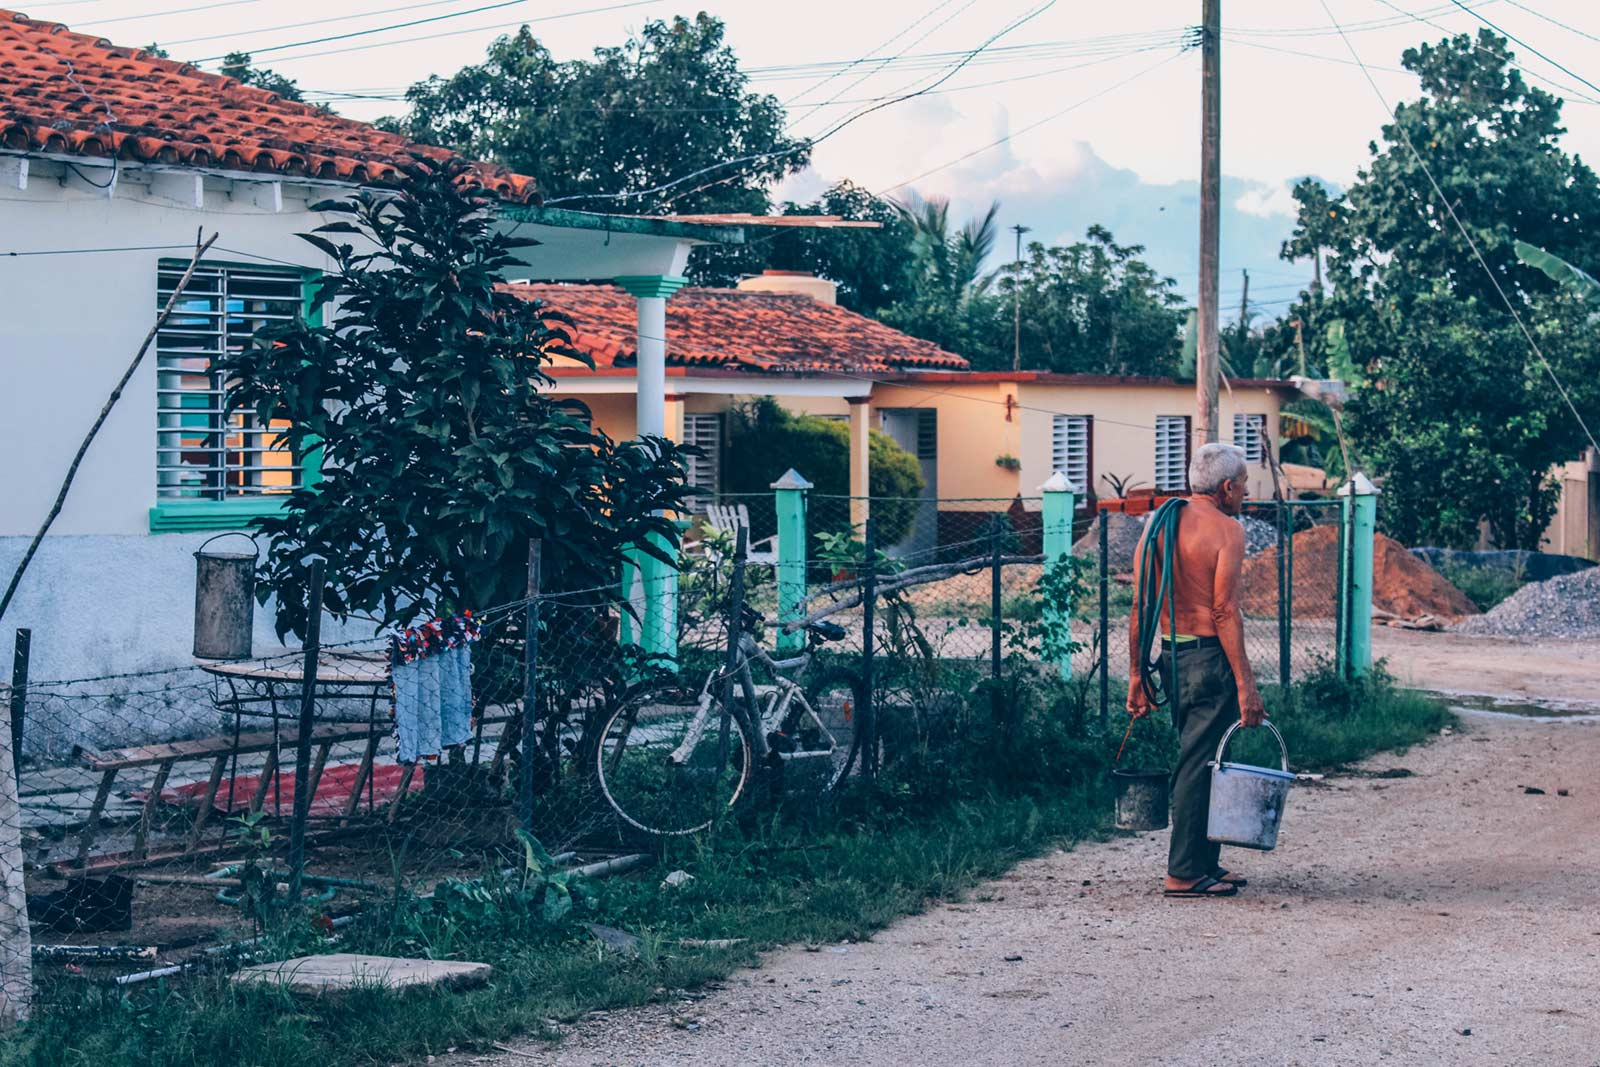 Vinales, Cuba. Photo by Augustin de Montesquiou on Unsplash